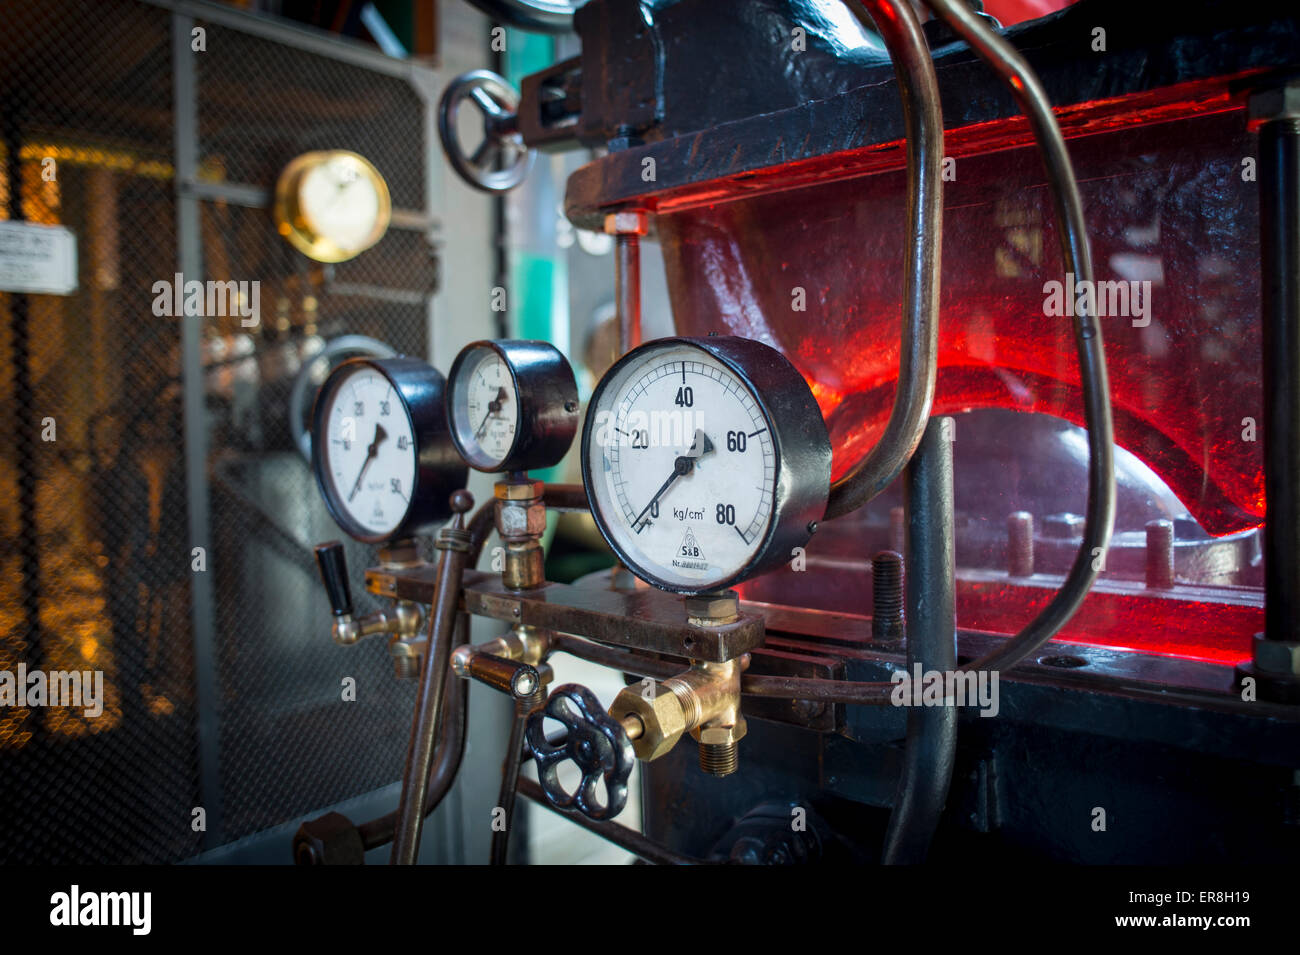 Dials and gauges in a power station - Stock Image